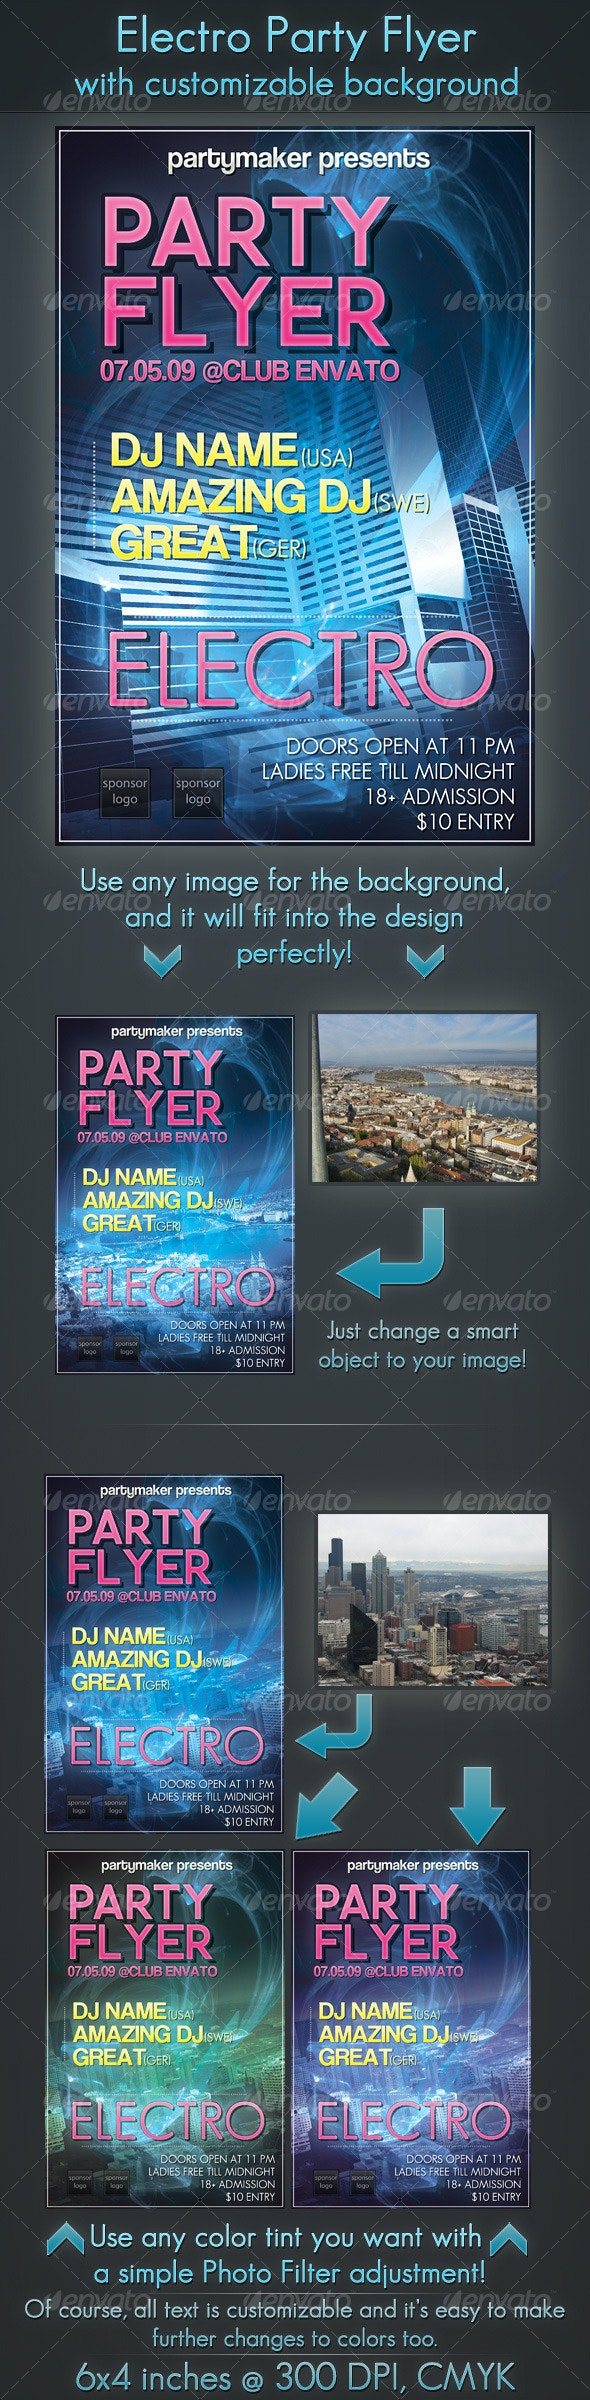 Electro Party Flyer with Customizable Background - Clubs & Parties Events